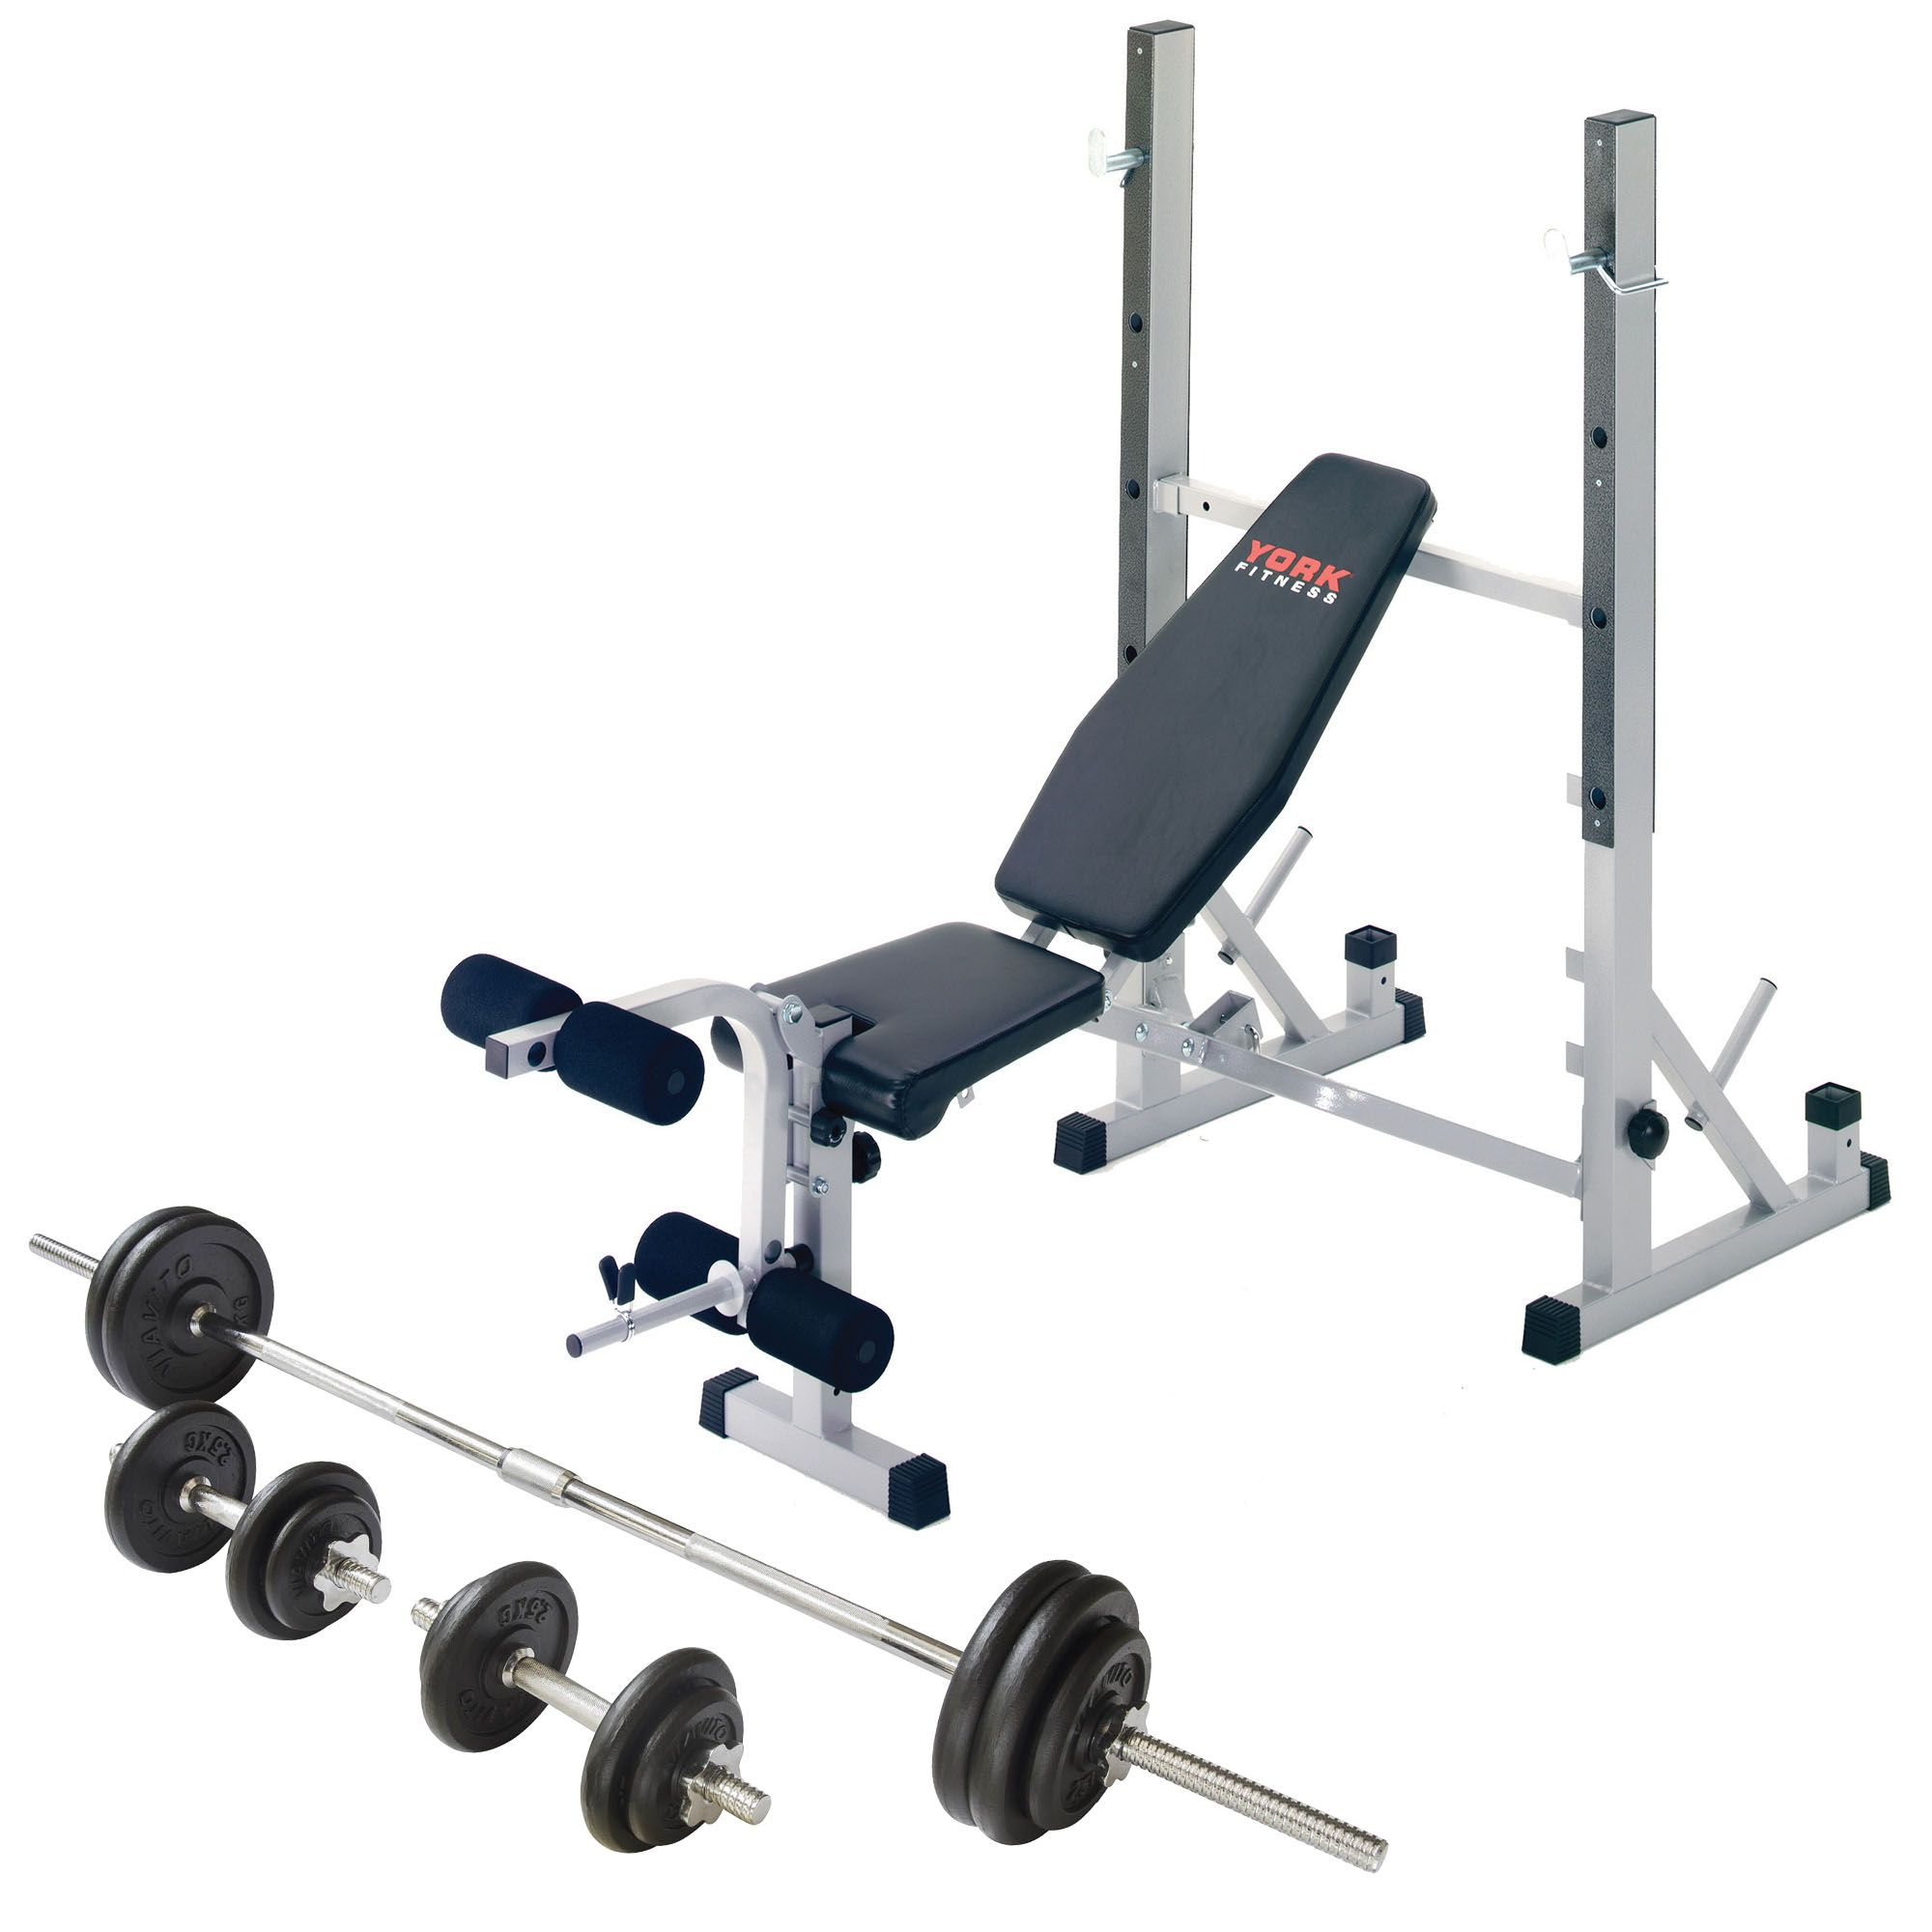 York b540 weight bench with 50kg barbell dumbbell set Bench and weight set